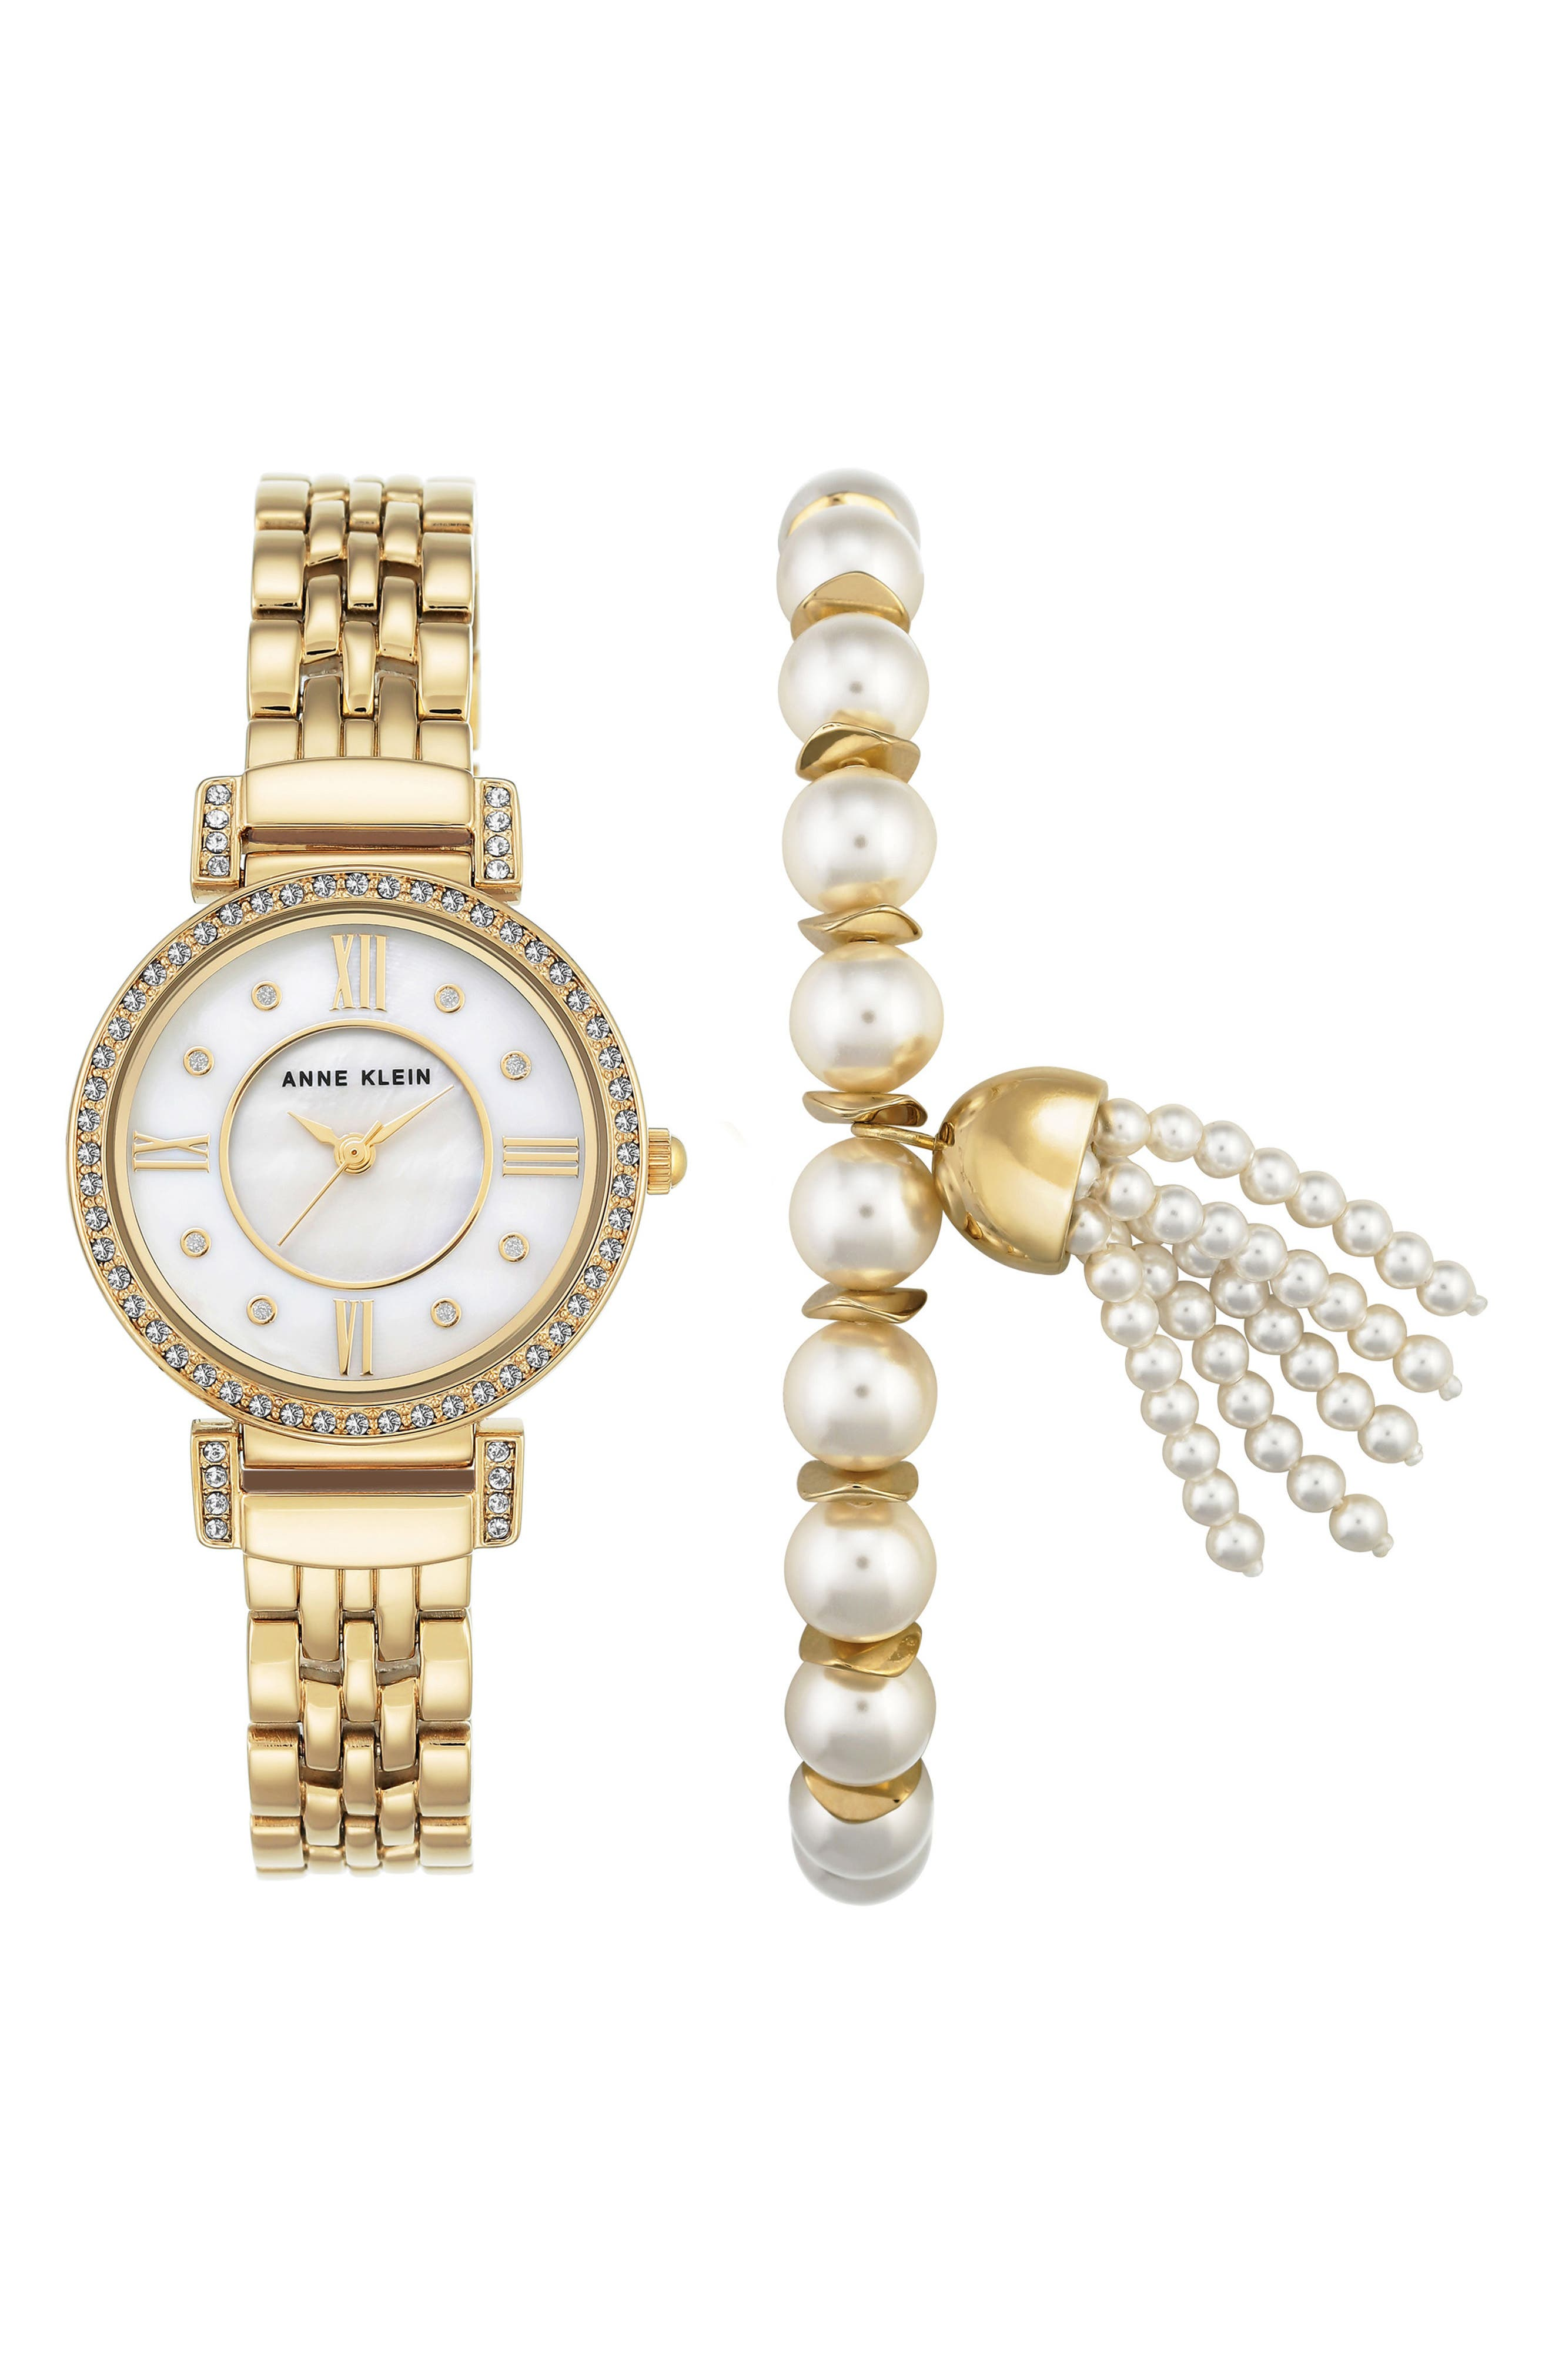 ANNE KLEIN Crystal Watch & Tassel Bracelet Set